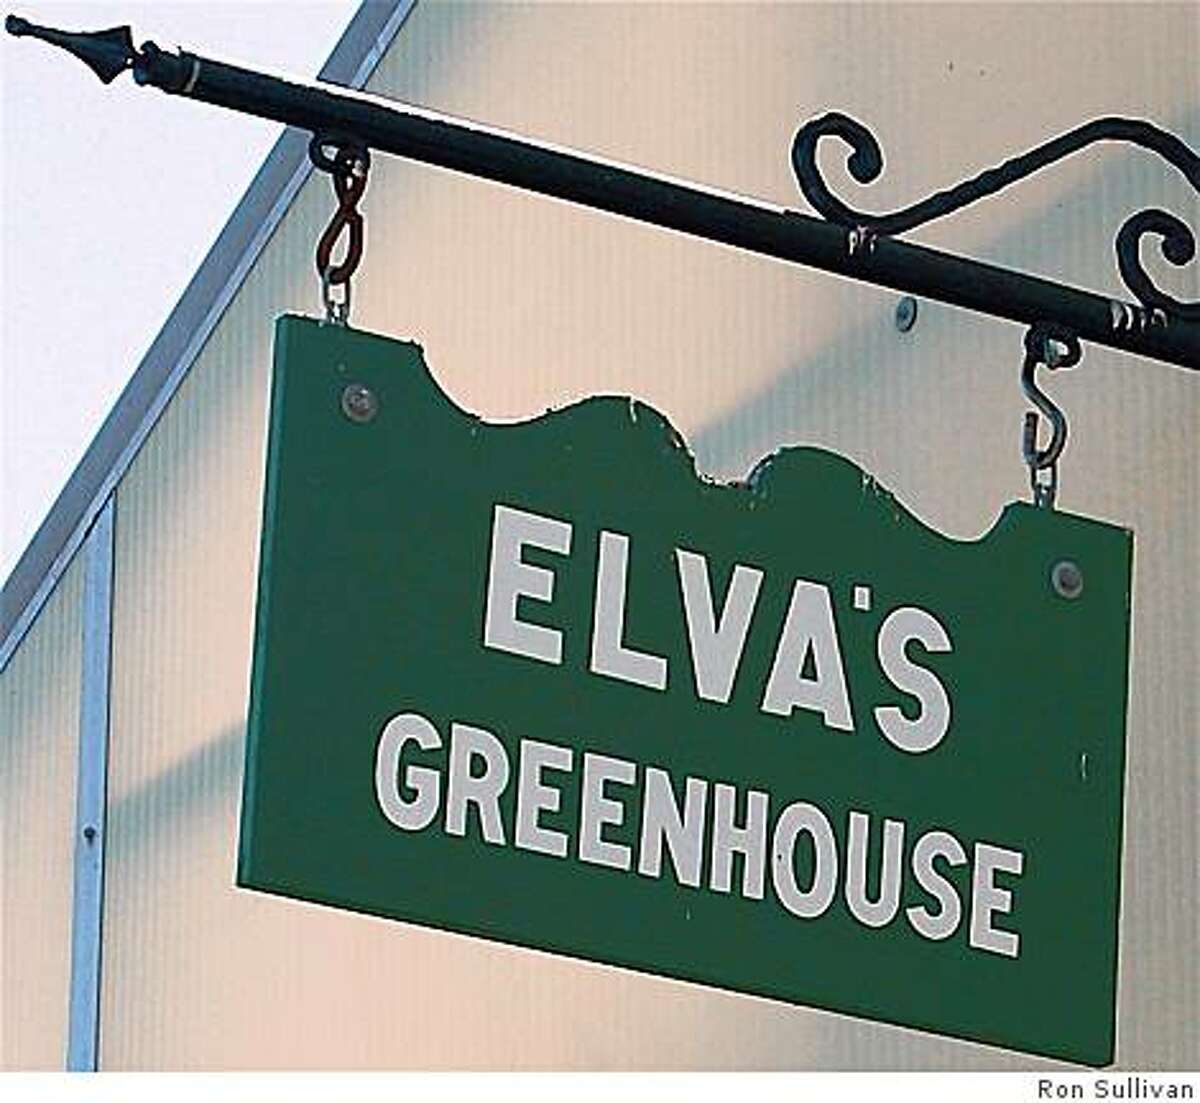 Elva's Greenhouse in Golden Gate Park